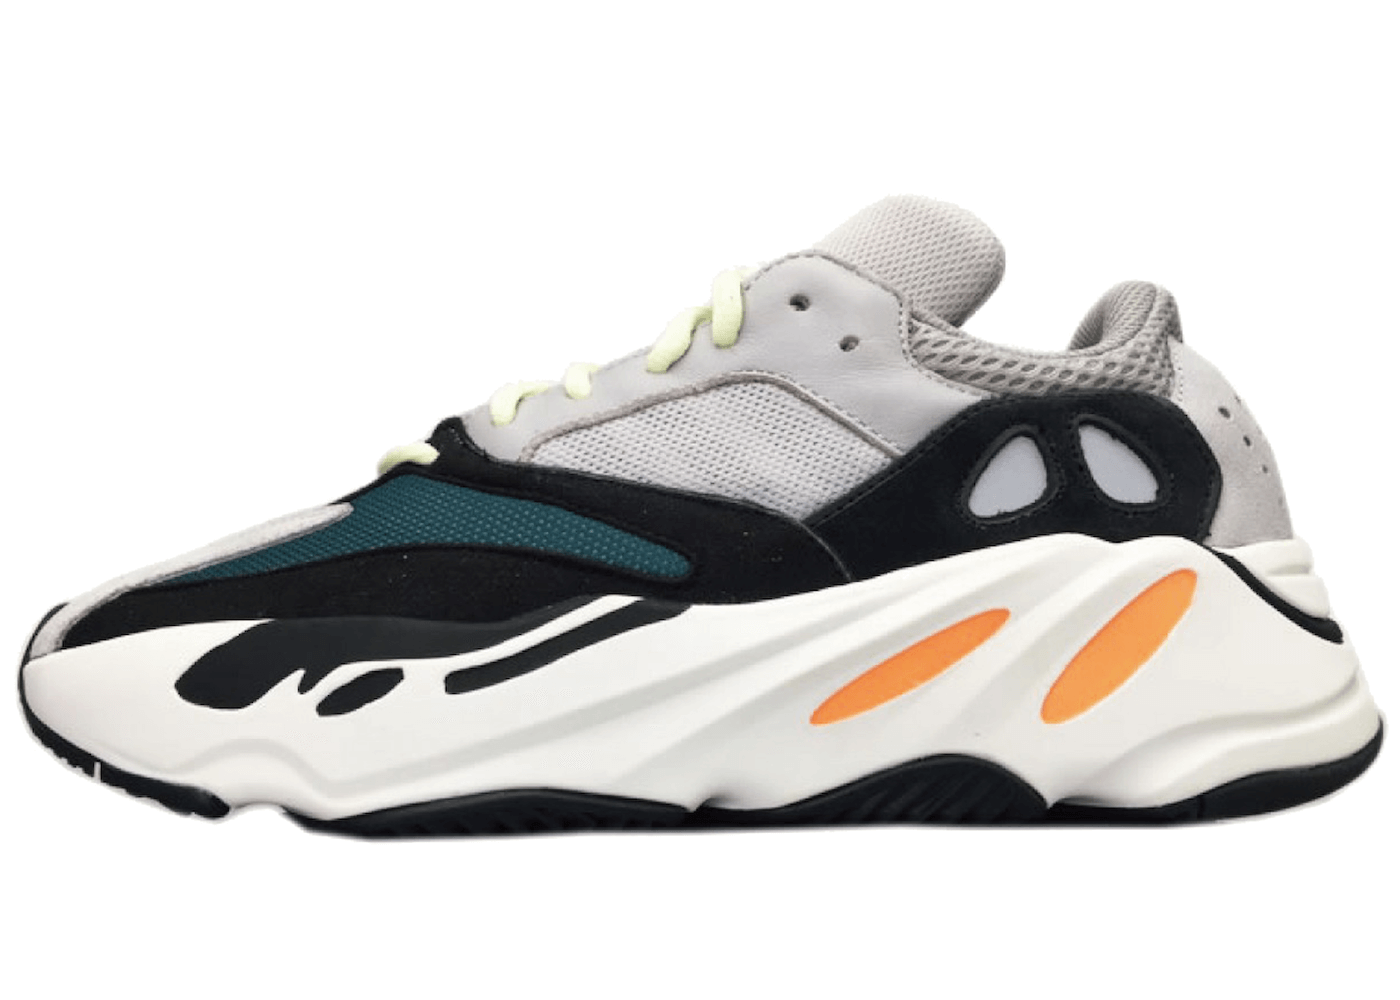 Adidas Yeezy Wave Runner 700 Solid Greyの写真